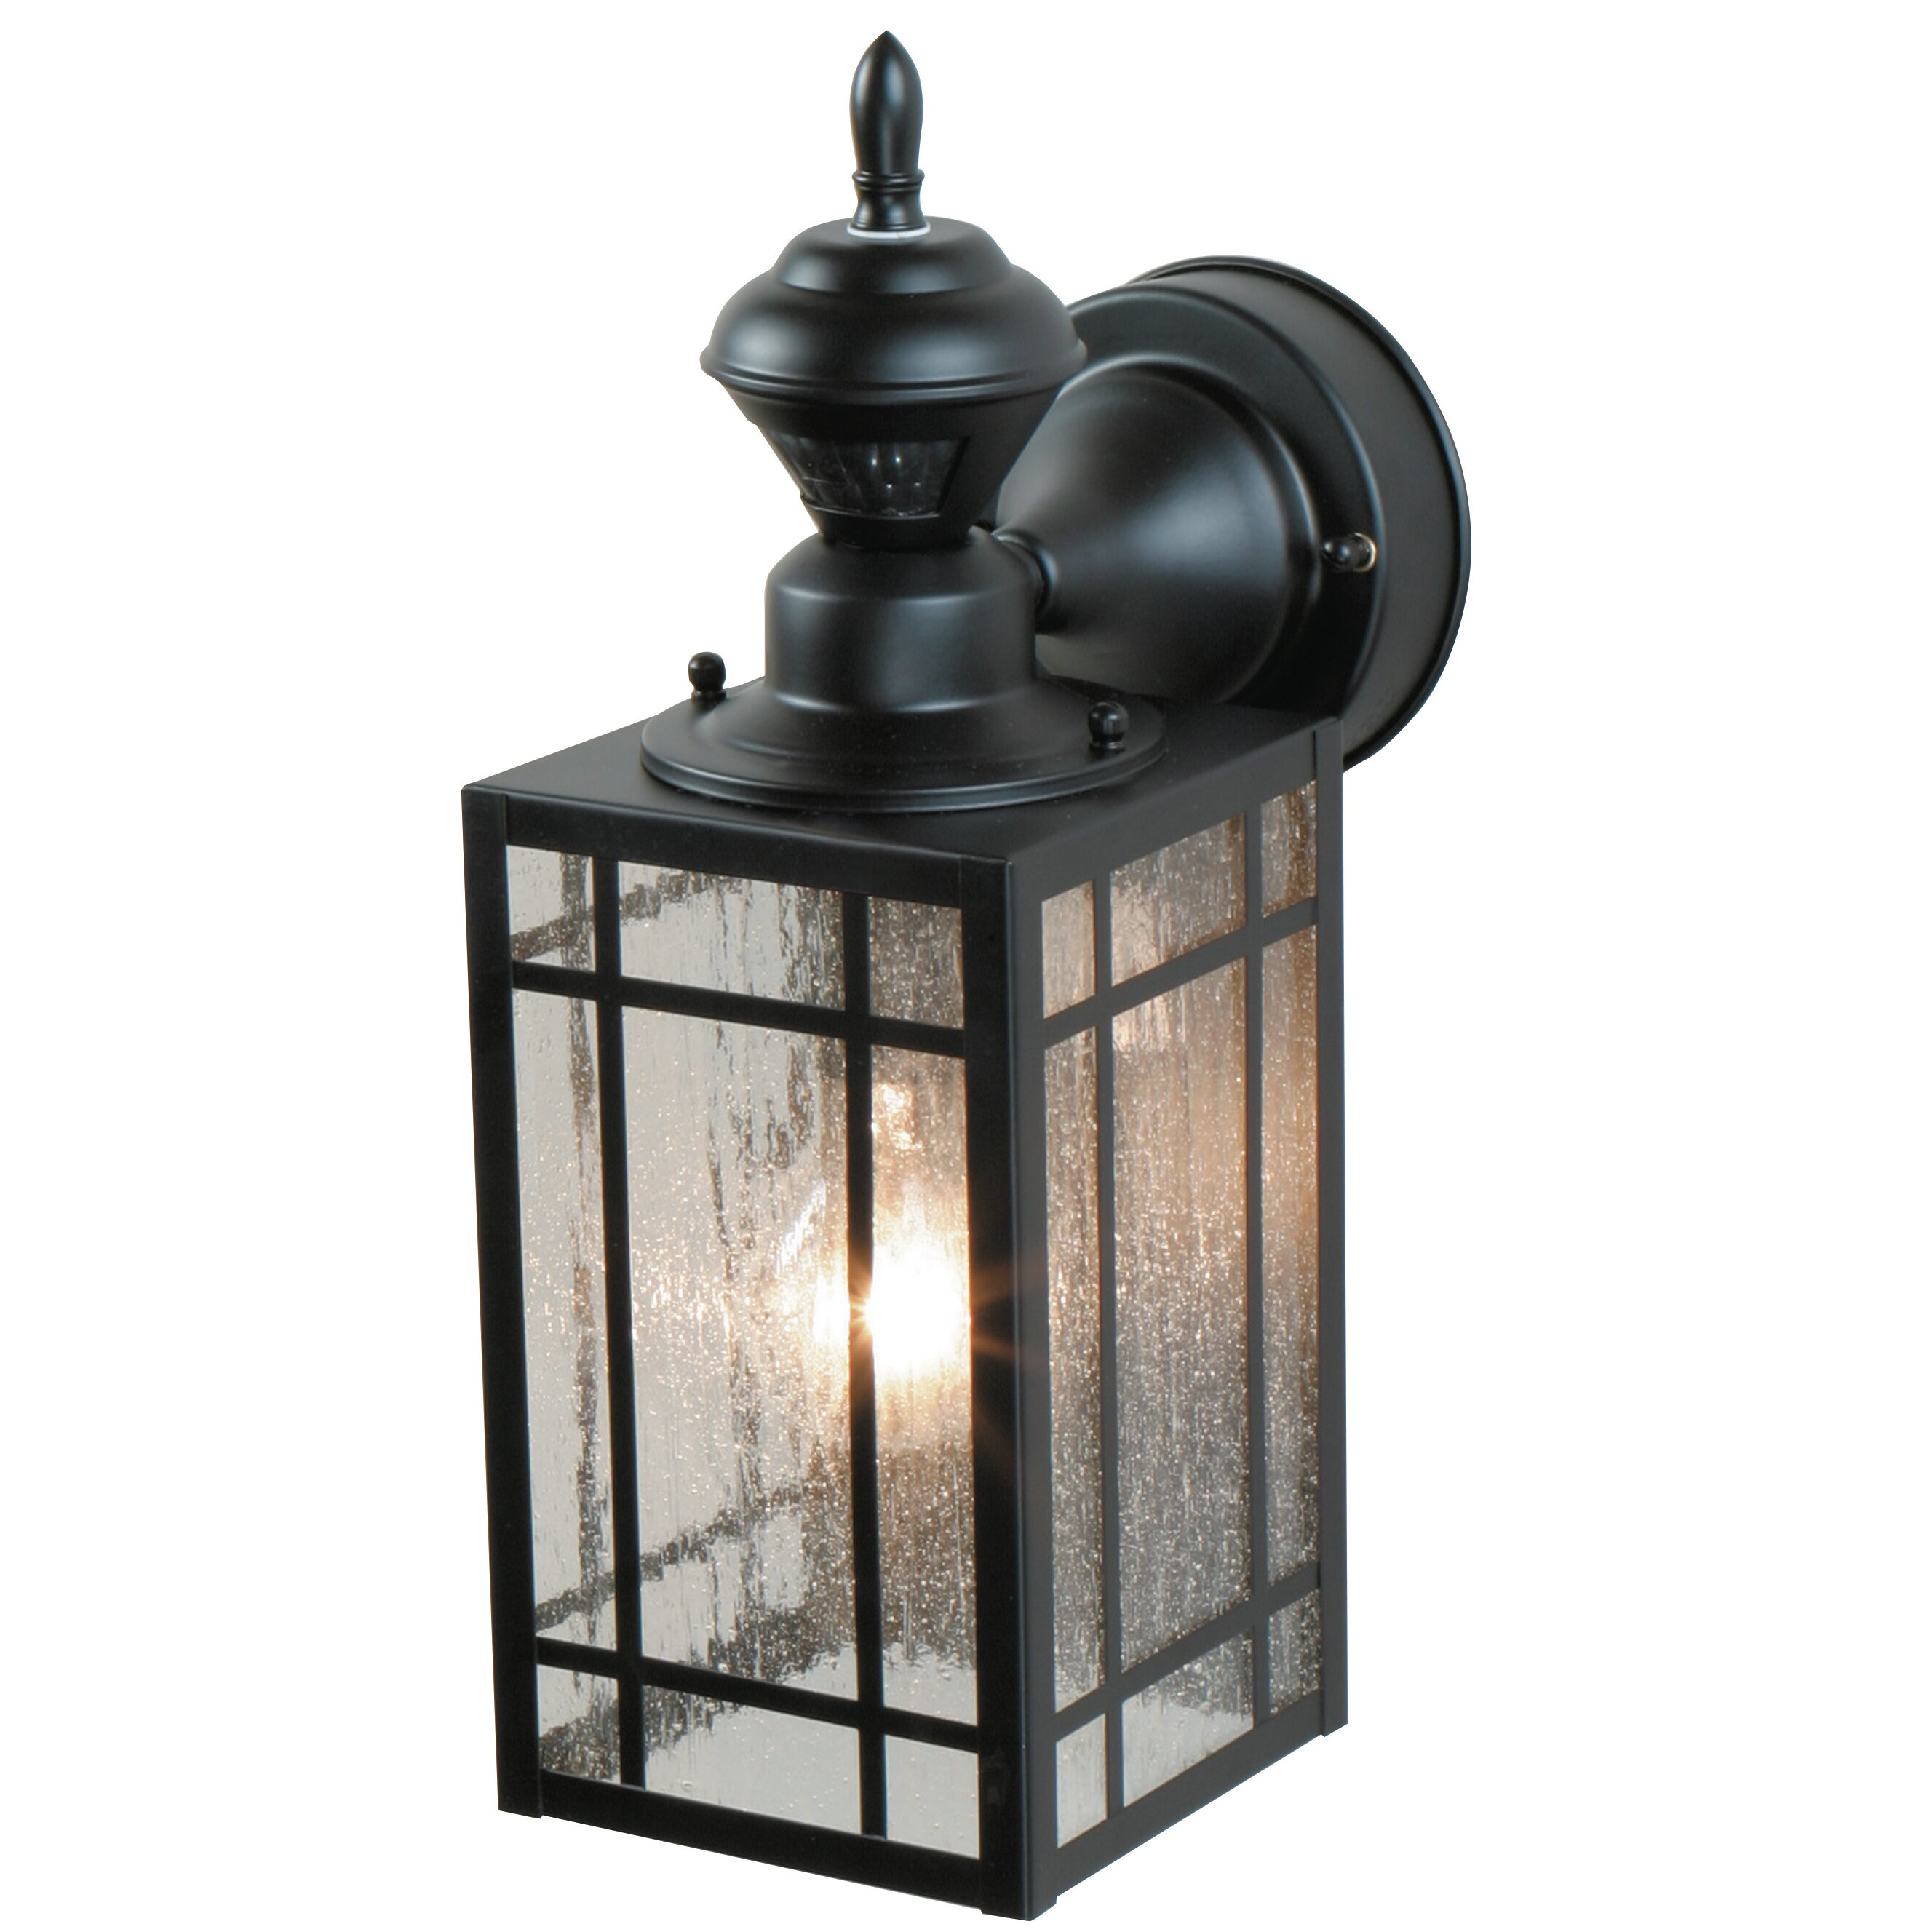 Wall Lantern External : Heath-Zenith 1 Light Outdoor Wall Lantern & Reviews Wayfair